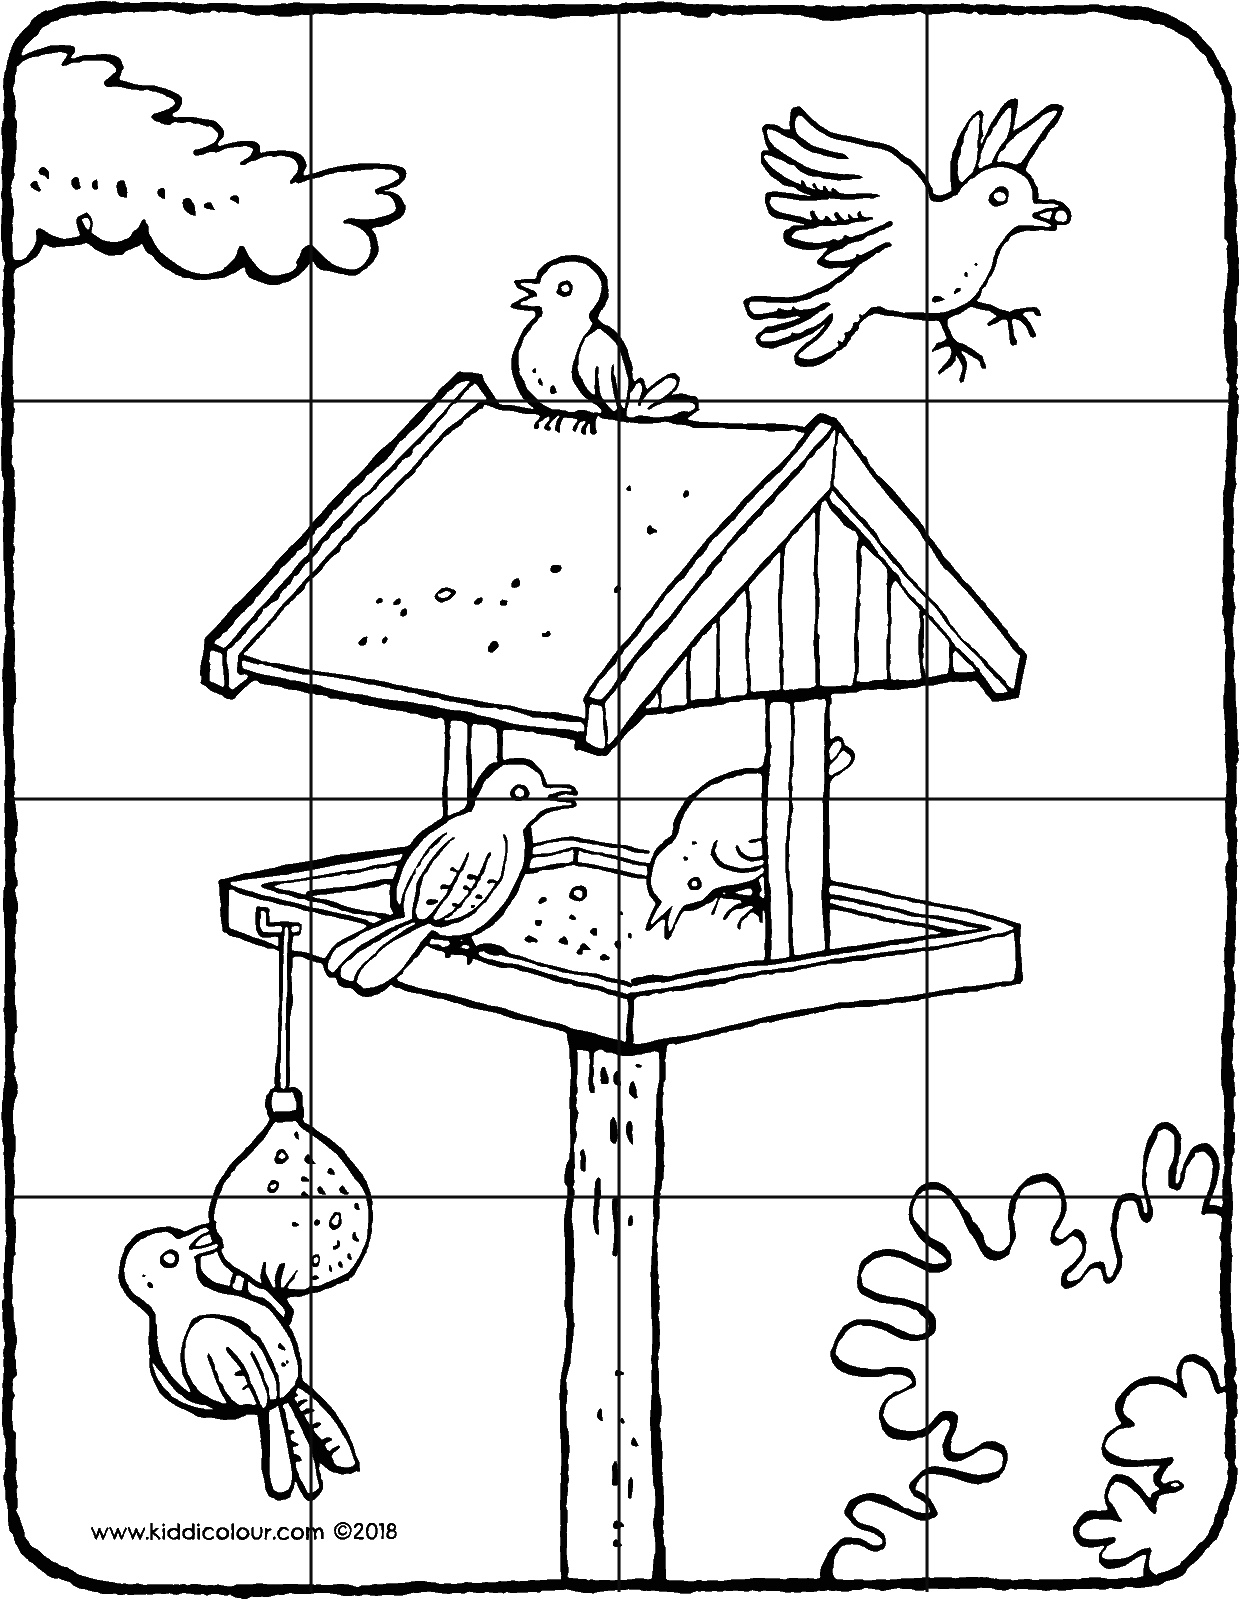 a bird table with birds 16-piece puzzle colouring page drawing picture 01V